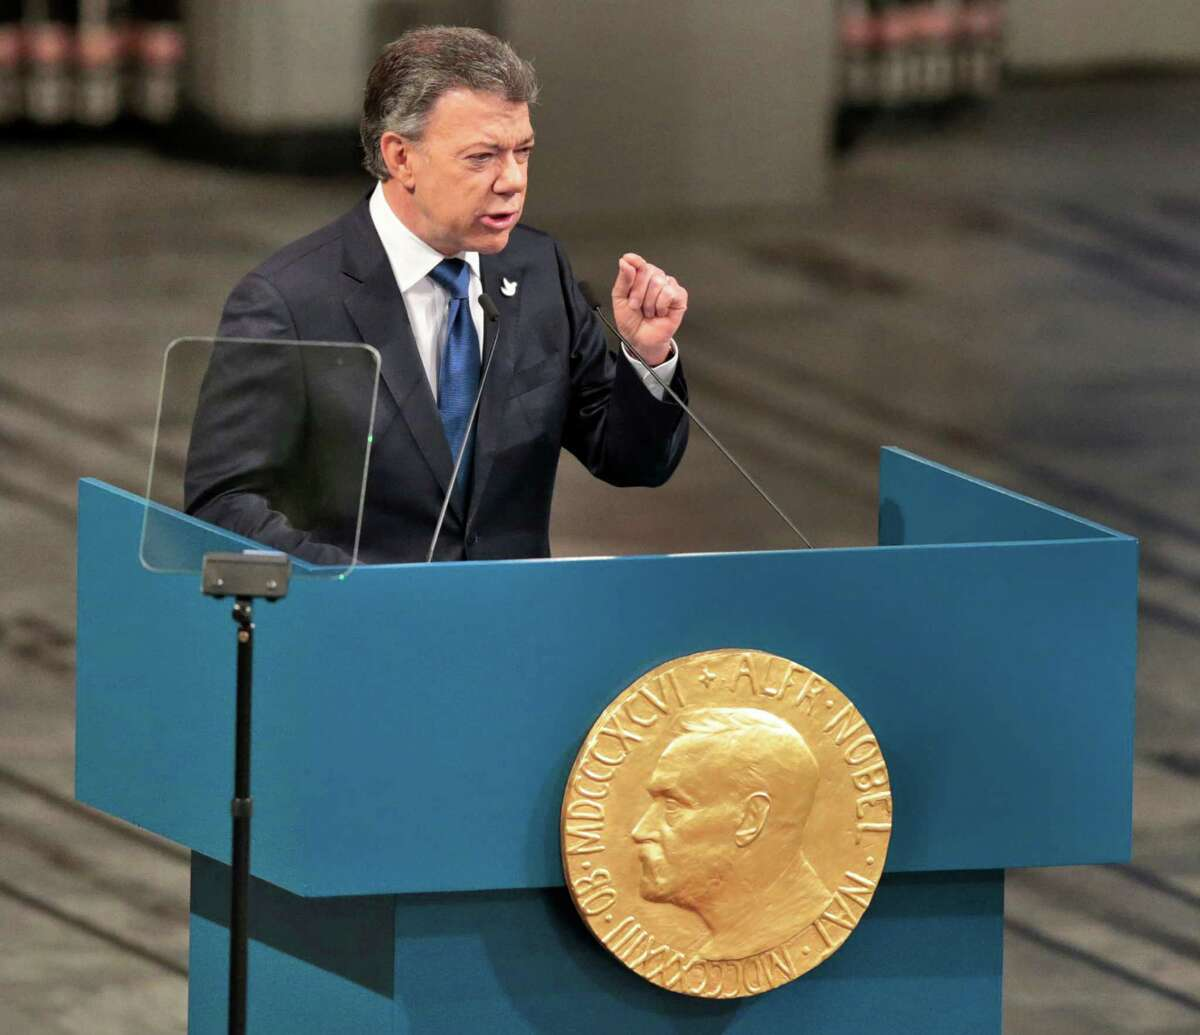 Nobel Peace Prize Laureate Colombian President Juan Manuel Santos gives a speech during the Peace Prize awarding ceremony at the City Hall in Oslo, Saturday Dec. 10, 2016. President Juan Manuel Santos are awarded this year's Nobel Peace Prize for his efforts to bring Colombia's more than 50-year-long civil war to an end. (Lise Aaserud / NTB scanpix via AP)